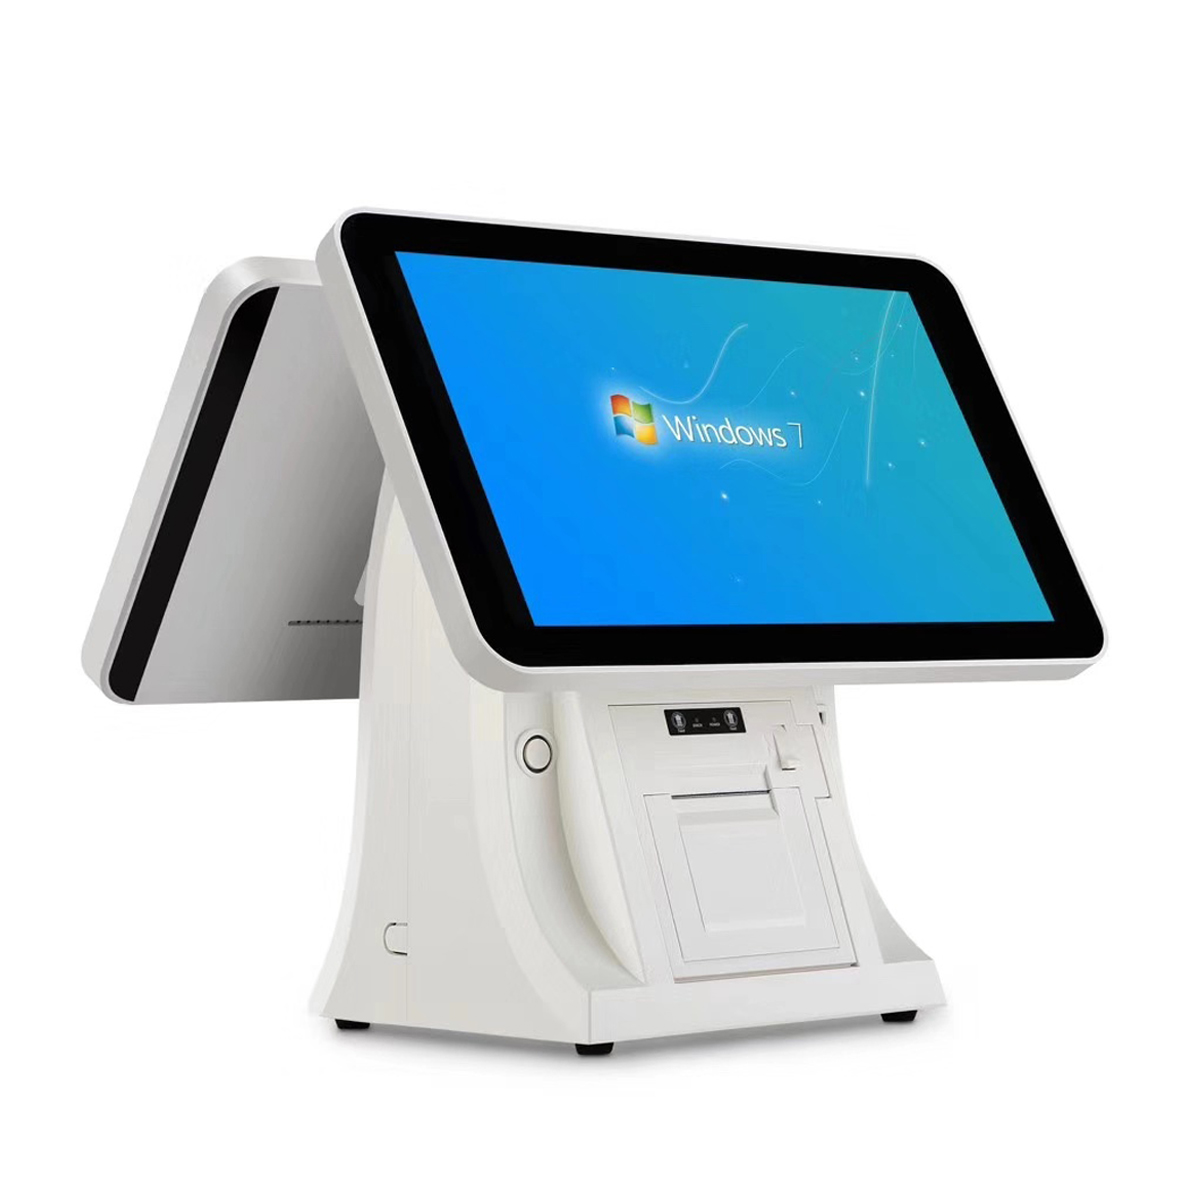 New 15inch pos cash register machine with built in 58m printer and qr code scanner